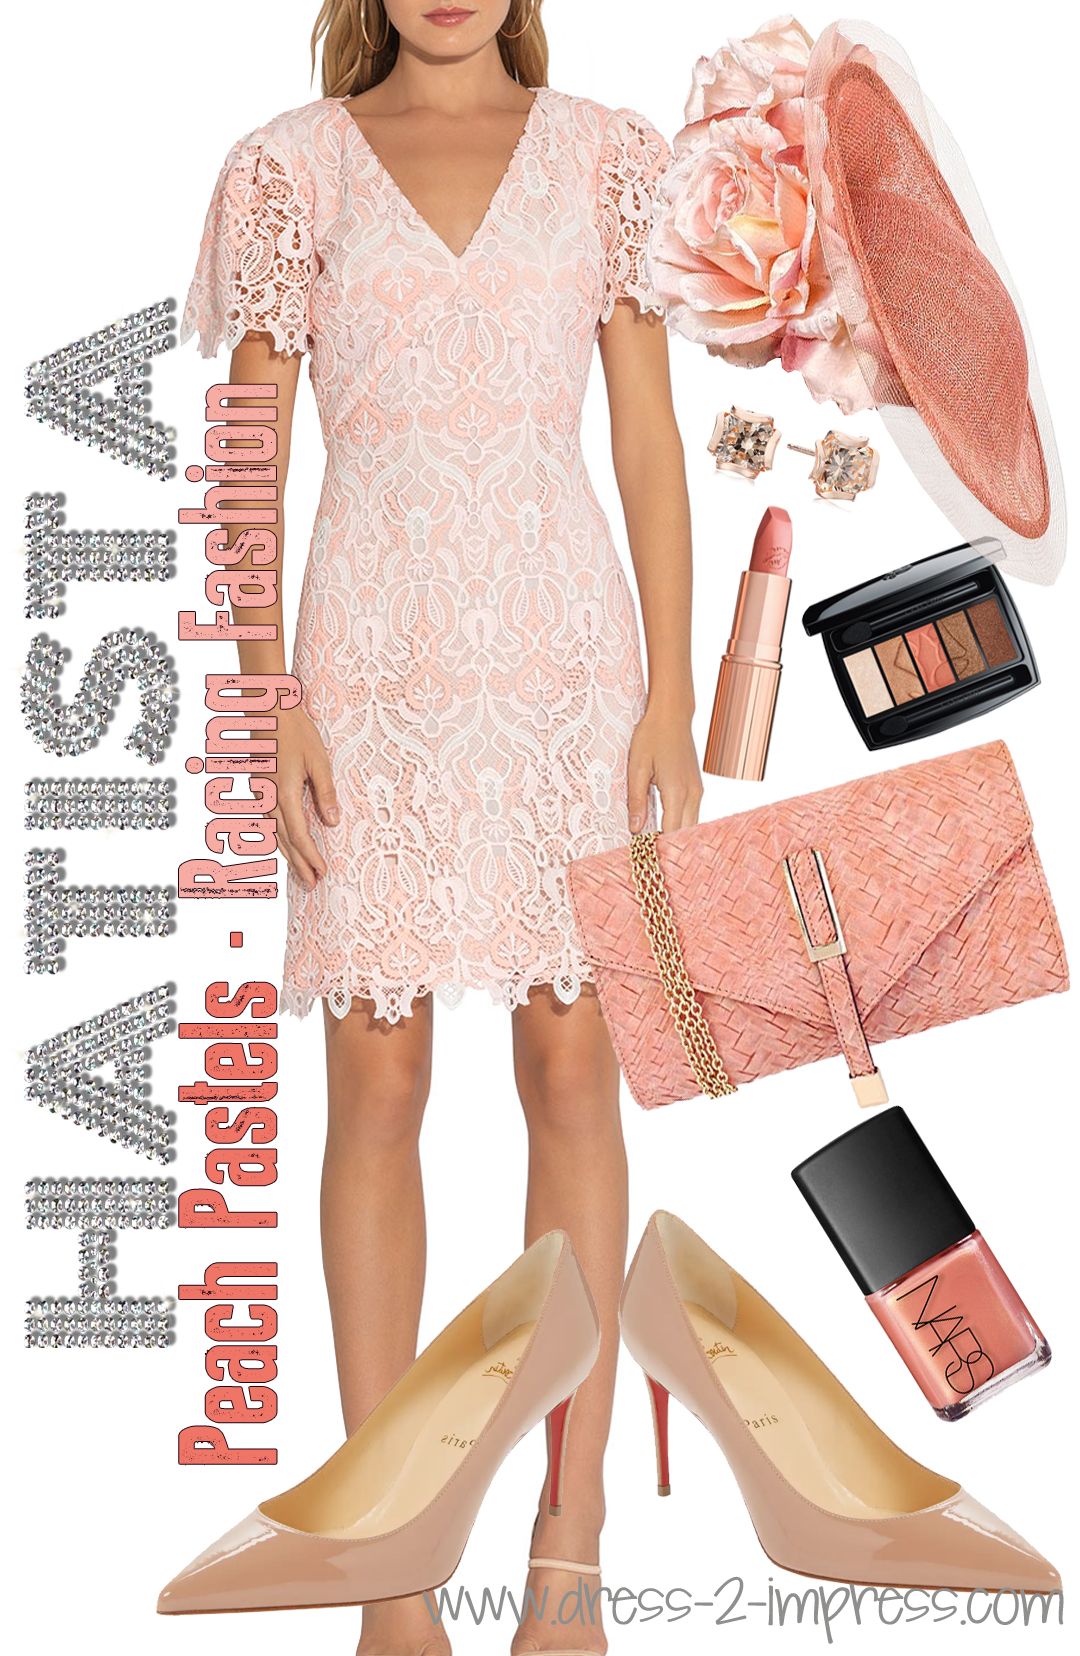 Kentucky Derby outfit ideas 2021. Floral Spring Wedding Guest Outfits 2021. What to wear for a Kentucky Derby Party 2021. Pastel outfits for the Kentucky Derby 2021. Kentucky Derby outfit inspiration 2021. Lace Dress for the Kentucky Derby 2021. Peach Lace Dress. Peach outfit for Kentucky Derby 2021. Kentucky Derby Party outfits 2021. Kentucky Derby Party outfits 2021. Kentucky Derby Fashion outfits 2021.